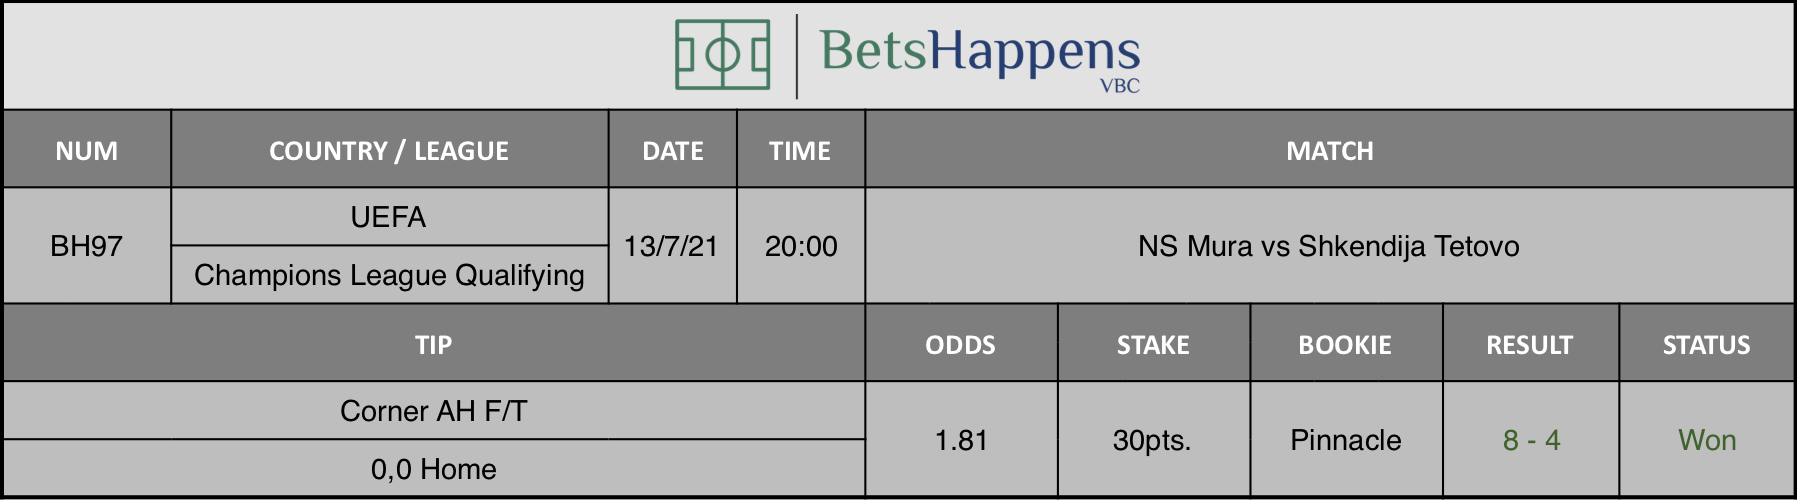 Results of our advice for the NS Mura vs Shkendija Tetovo match in which Corner AH F/T 0,0 Home is recommended.